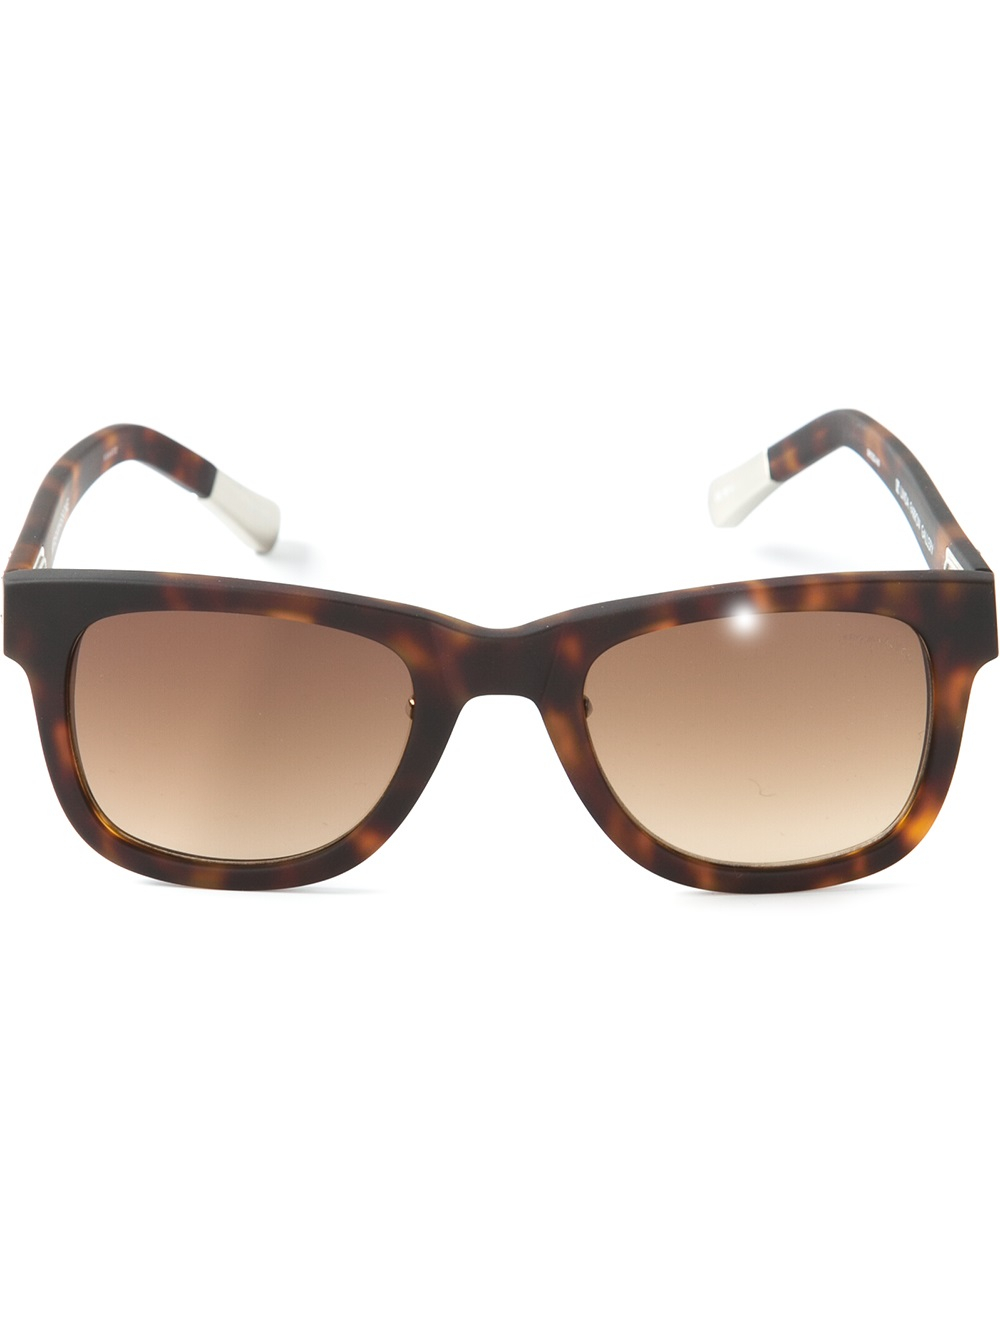 Vans Glasses Frame : Kris Van Assche Brown Square Frame Sunglasses for Men Lyst